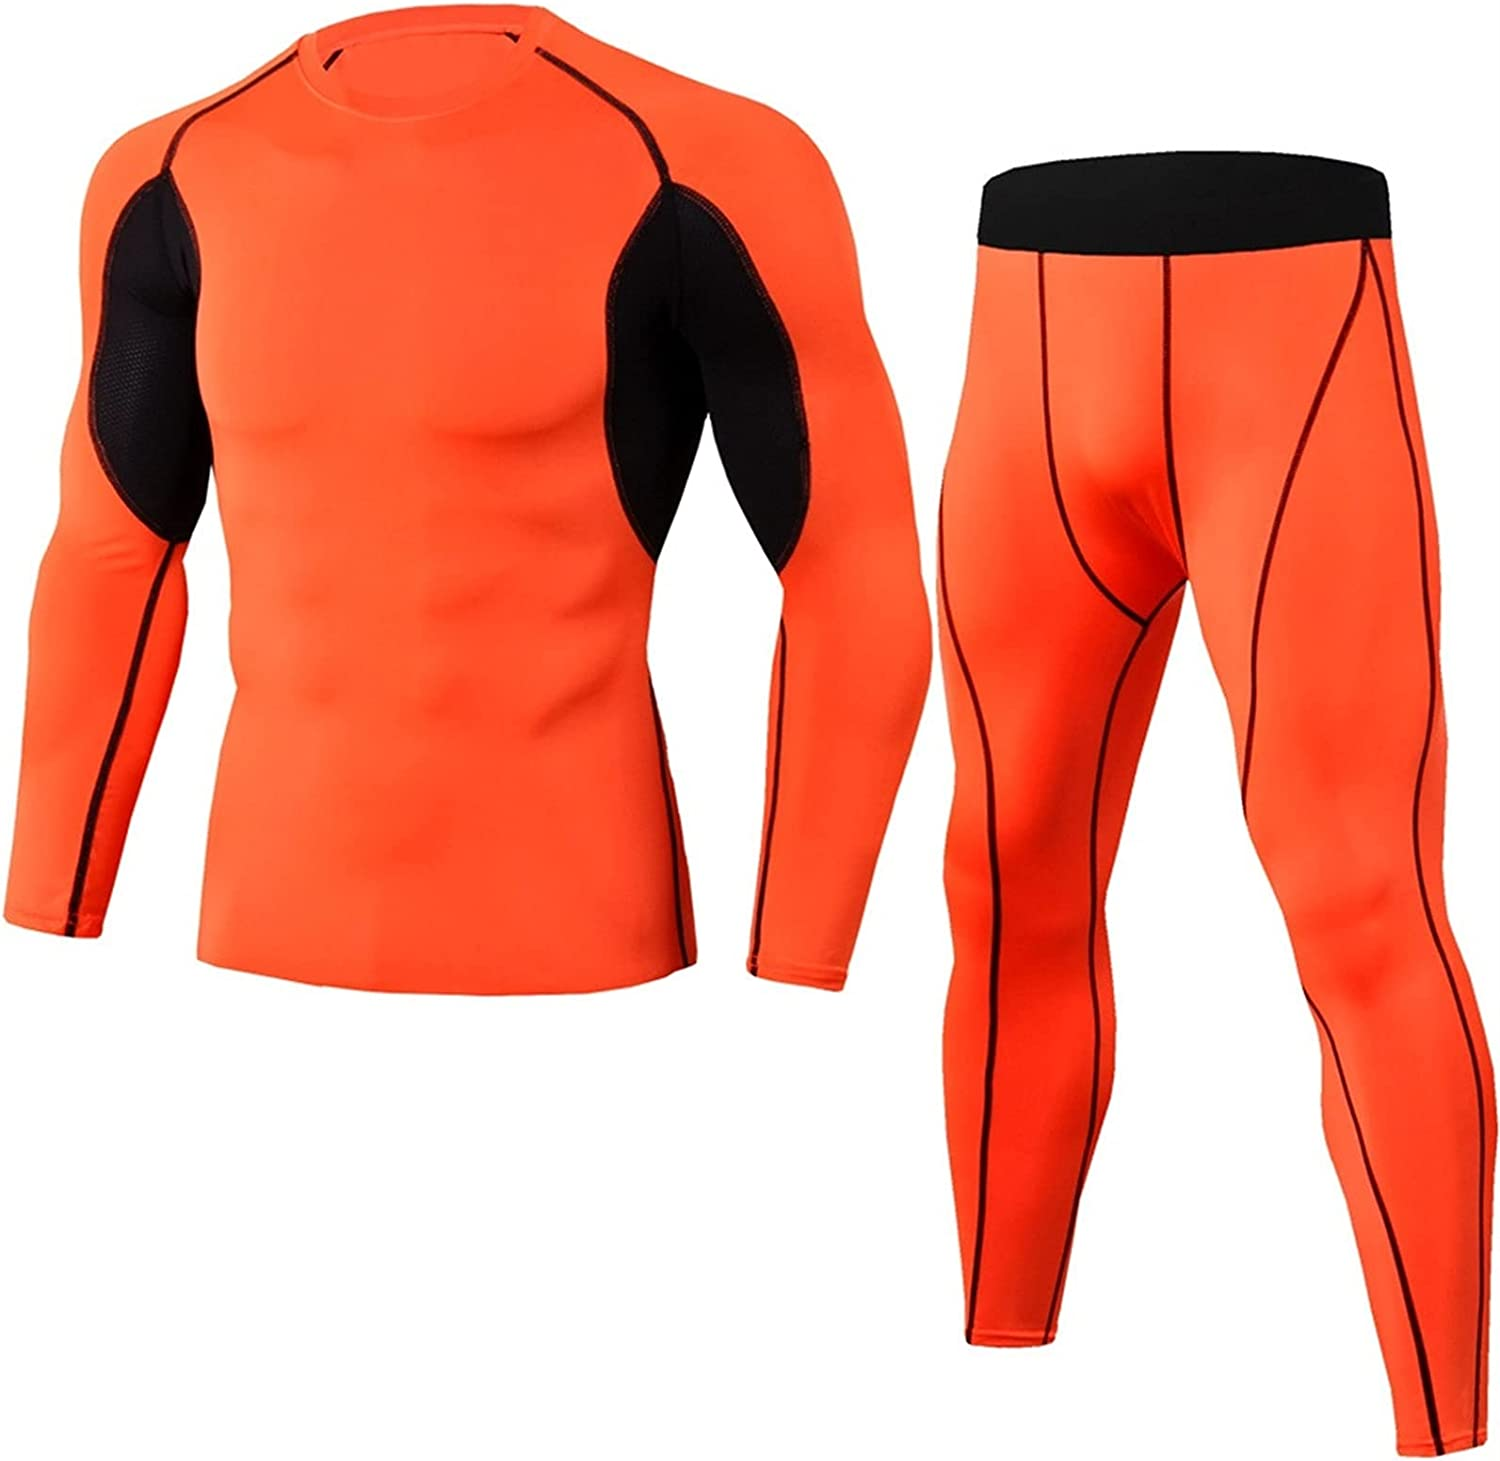 GELTDN Thermal Underwear Comfortable and Breathable Basic Layer Thermal Underwear Sports Bottomed Tights Shirts Tights (Color : E, Size : XL Code)